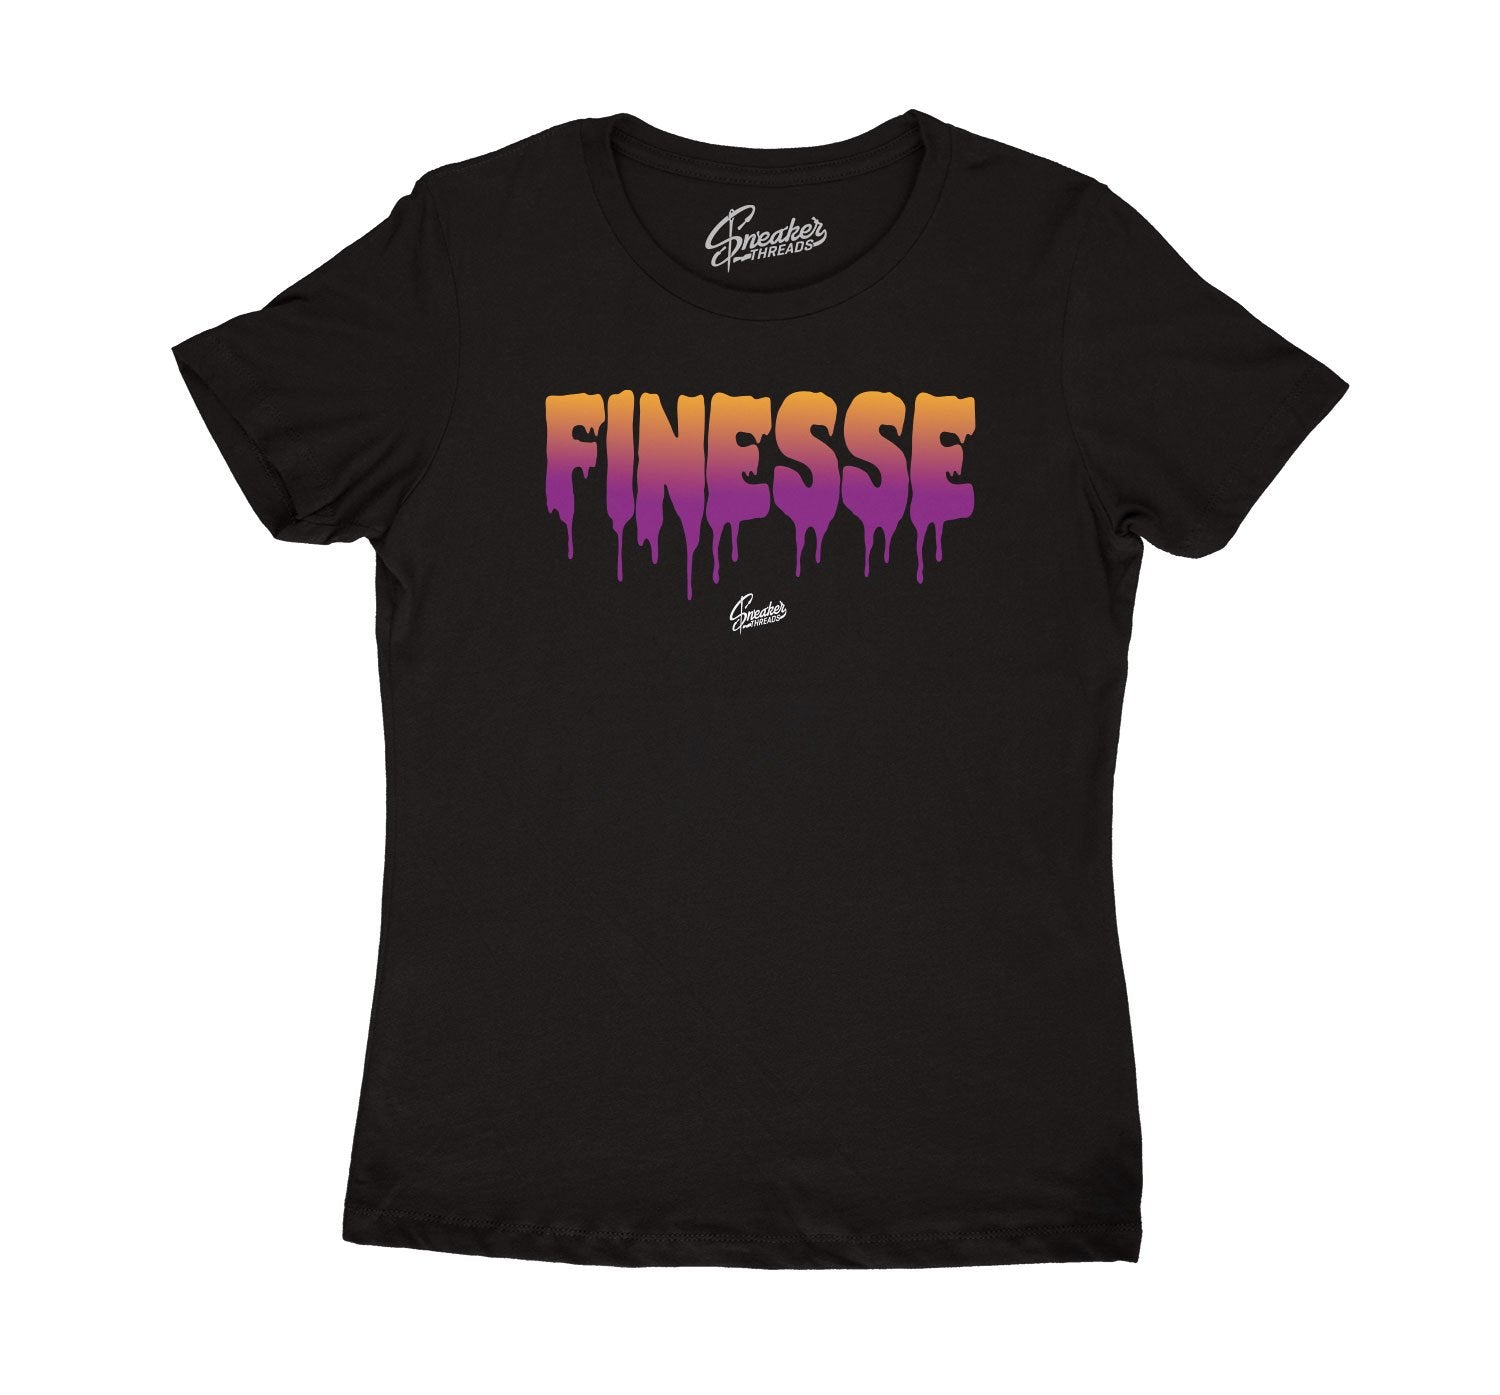 Collection of shirts designed for women match sneaker Jordan 4 rush violet